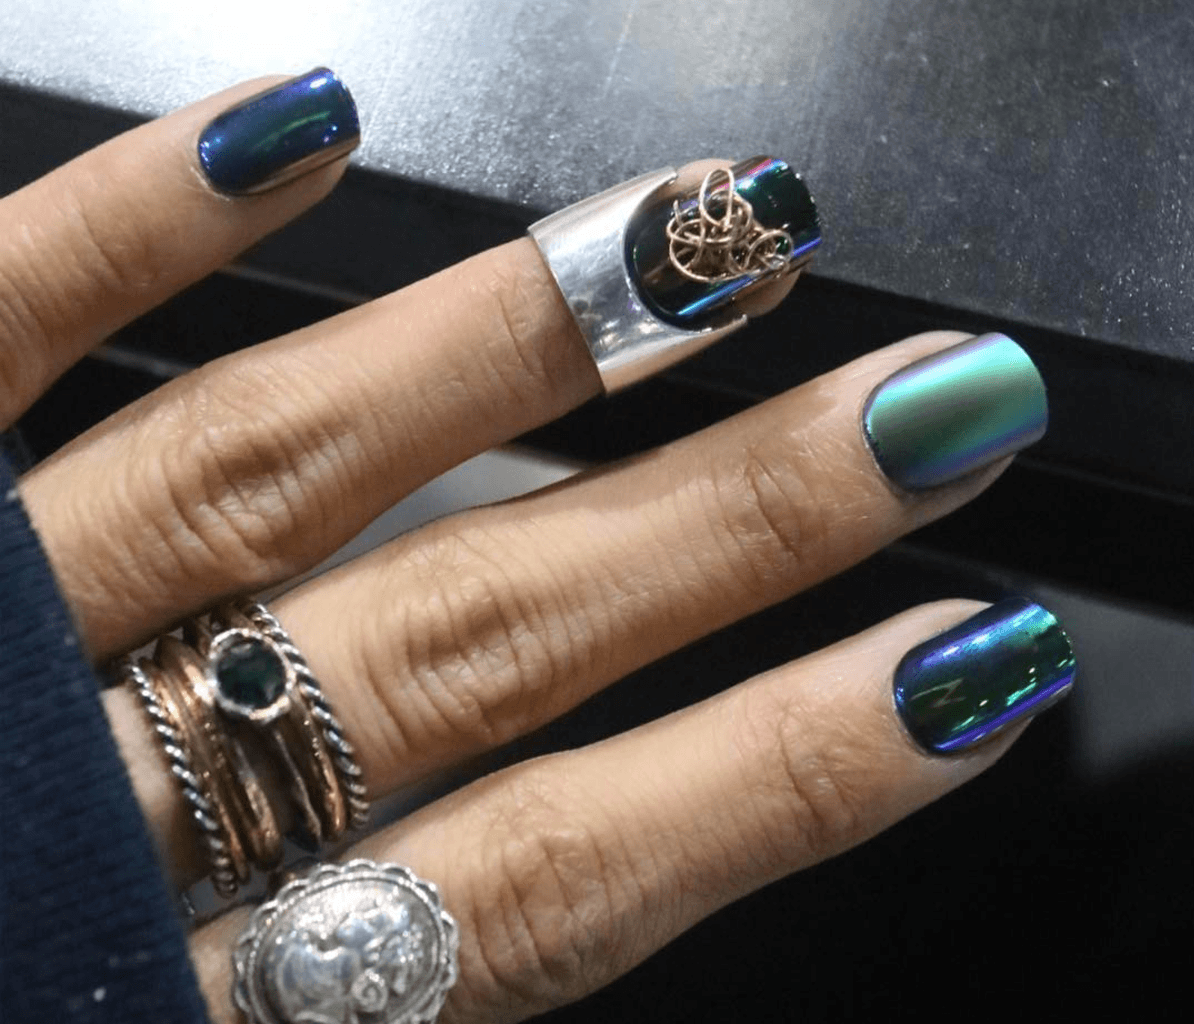 7 of the most creative trends in korean nail art that will blow 7 of the most creative trends in korean nail art that will blow your mind koreaboo prinsesfo Image collections